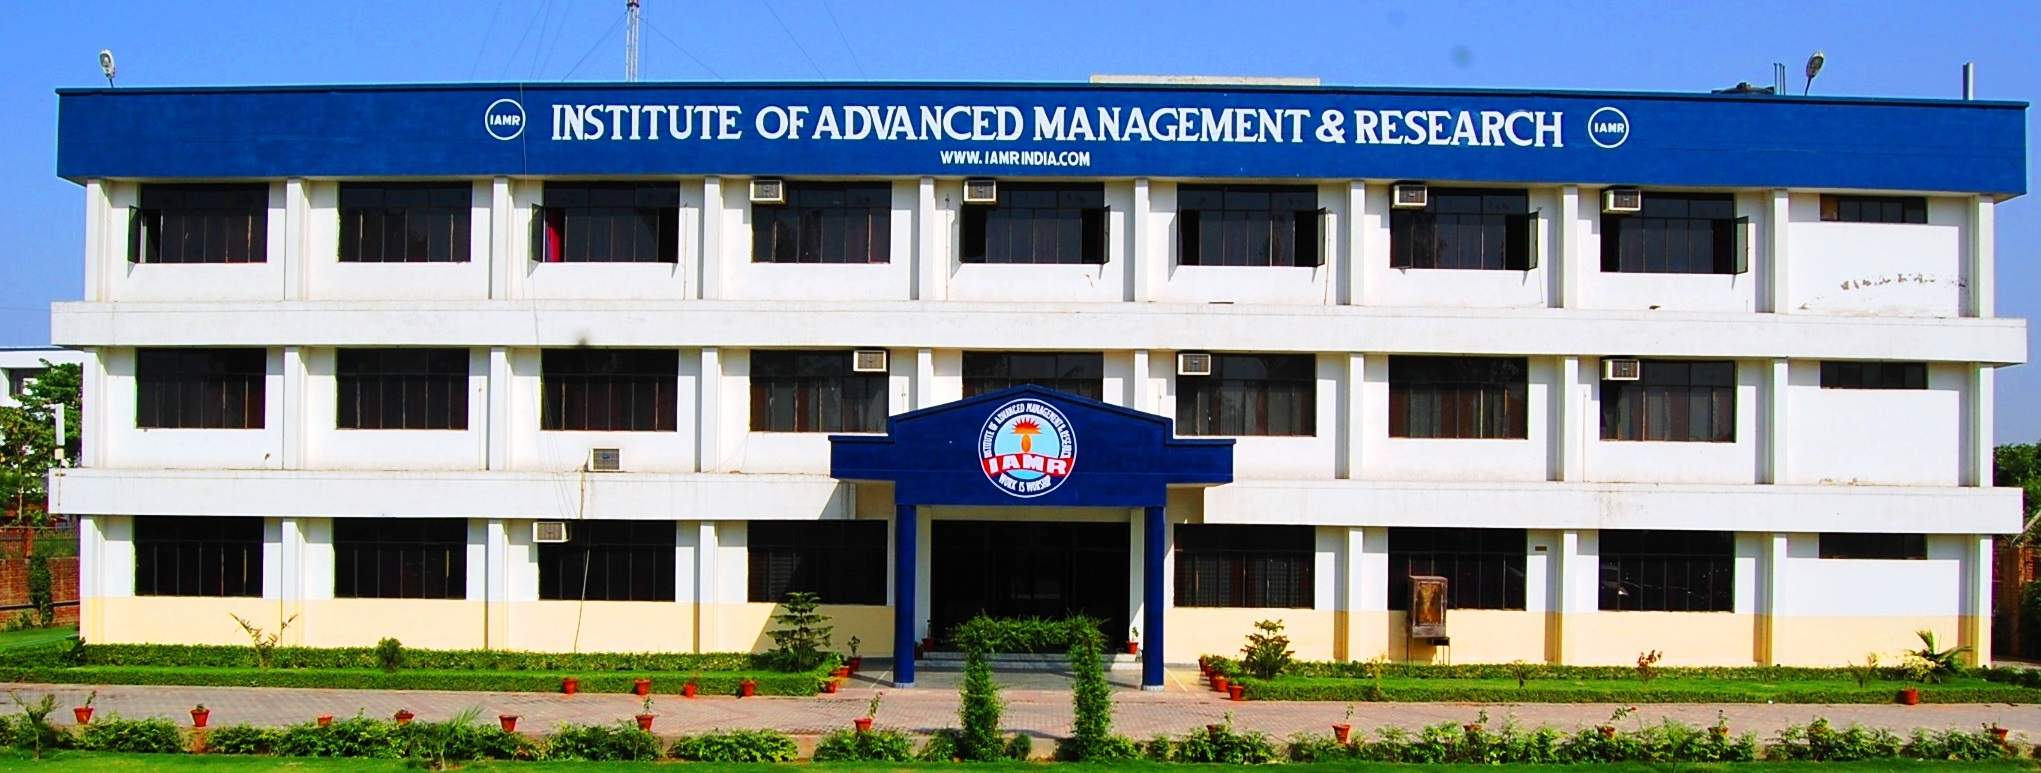 IAMR - INSTITUTE OF ADVANCED MANAGEMENT RESEARCH